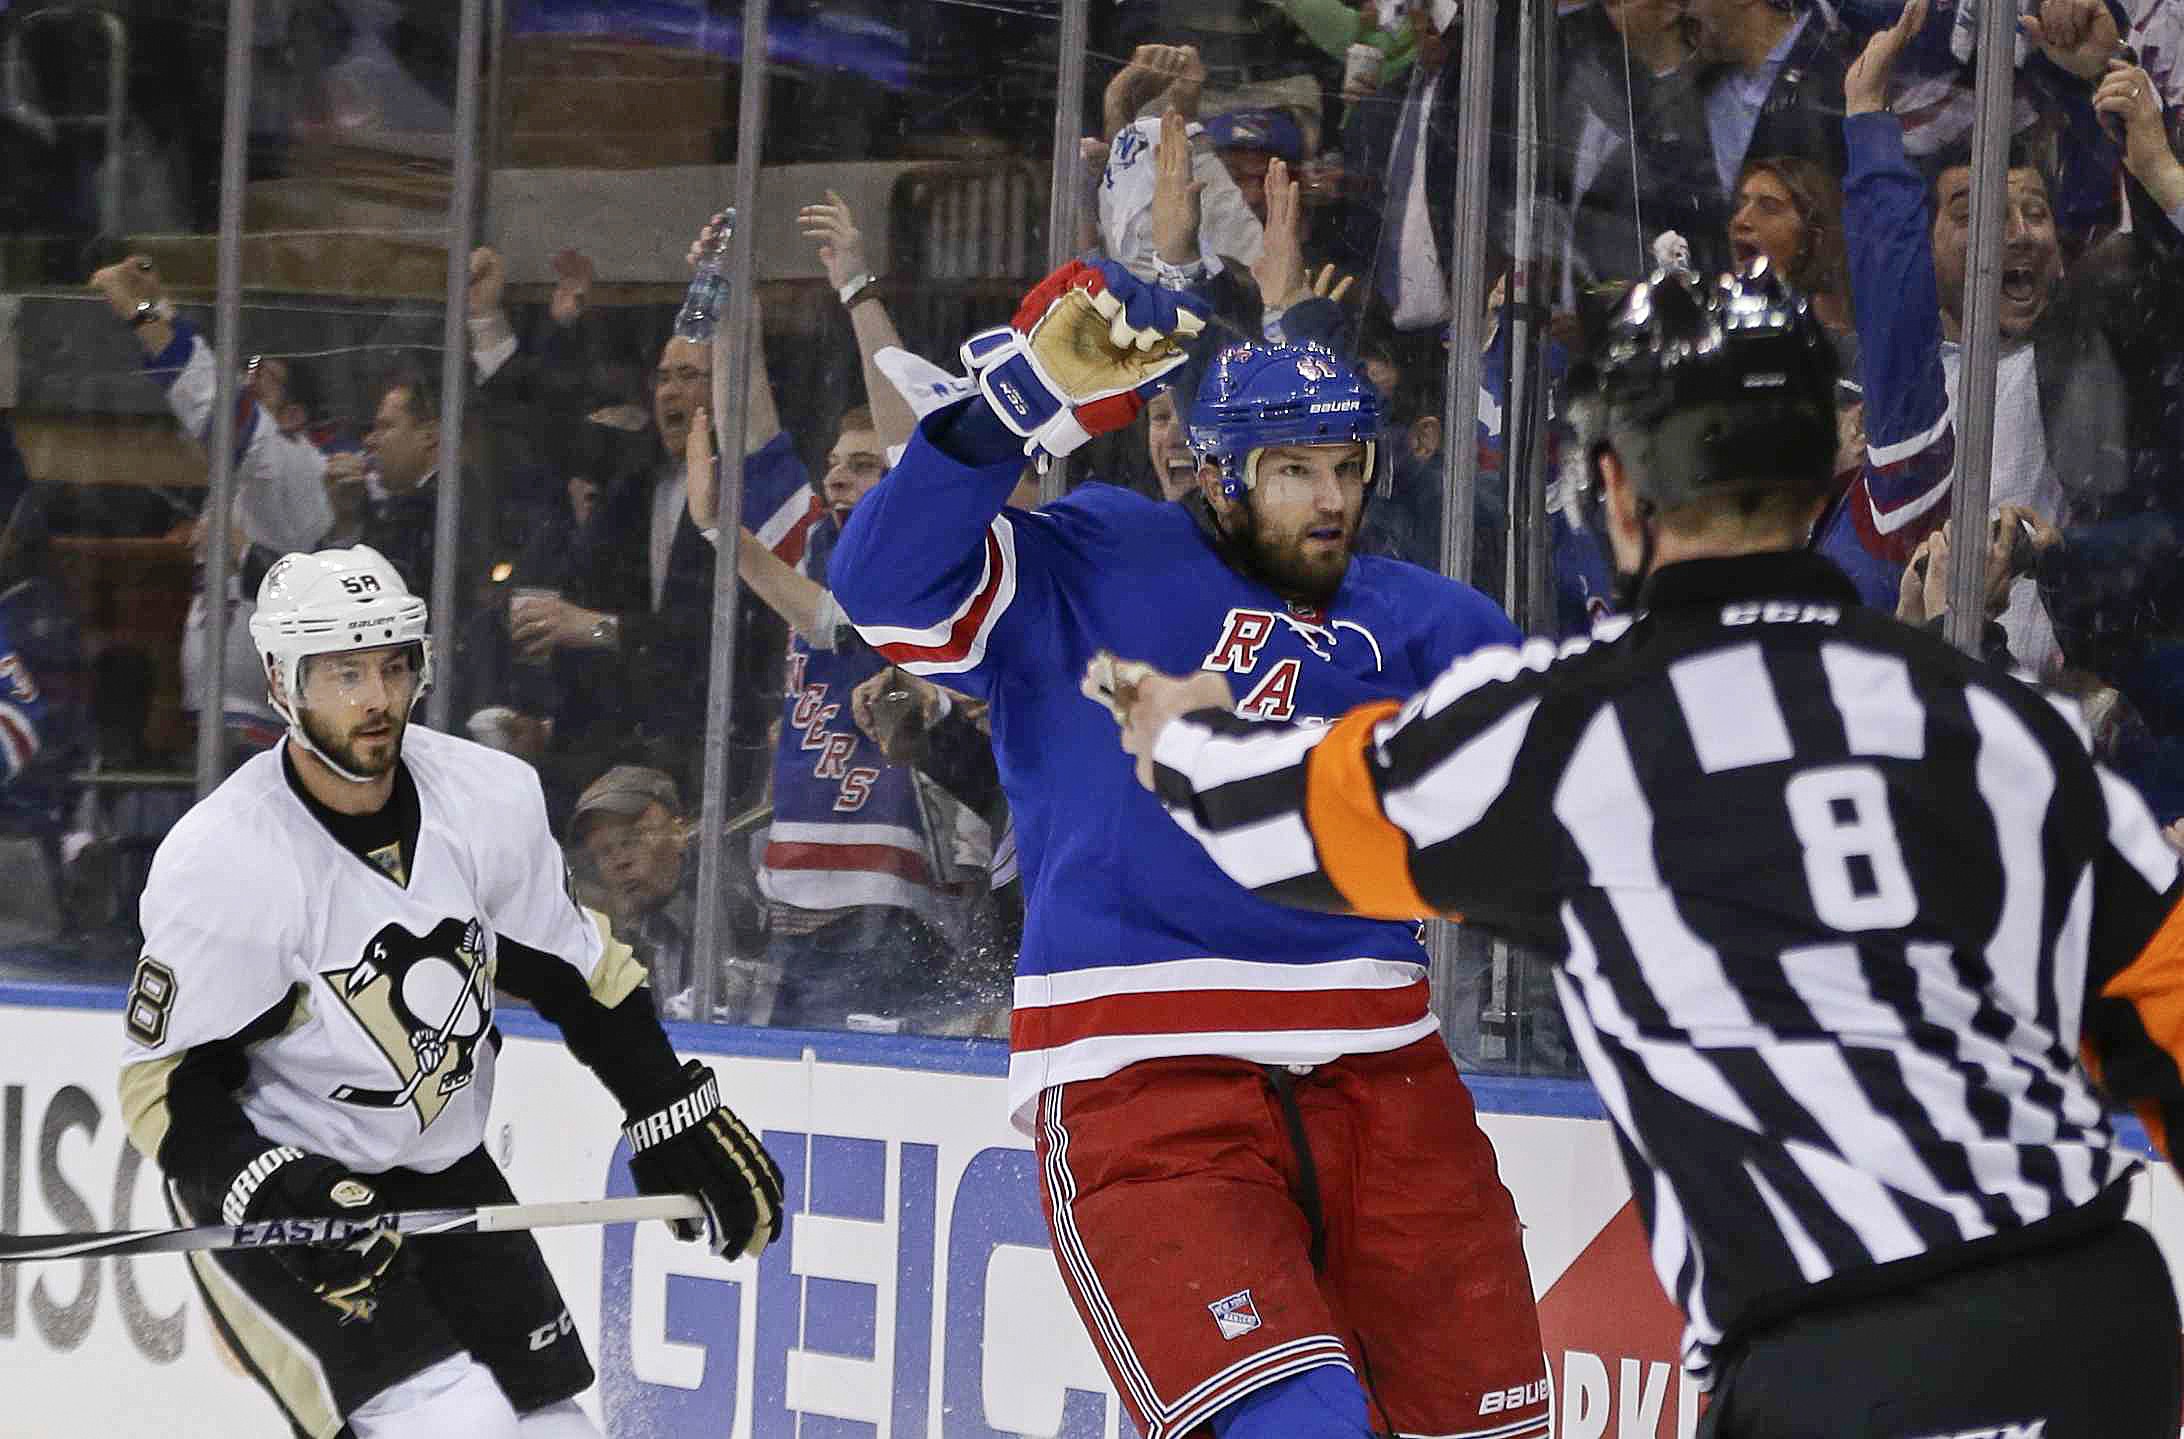 New York Rangers' Rick Nash celebrates after scoring a goal as Pittsburgh Penguins' Kris Letang (58) watches during the second period of Game 3 of a first-round NHL playoff hockey series Tuesday, April 19, 2016, in New York. (AP Photo/Frank Franklin II)